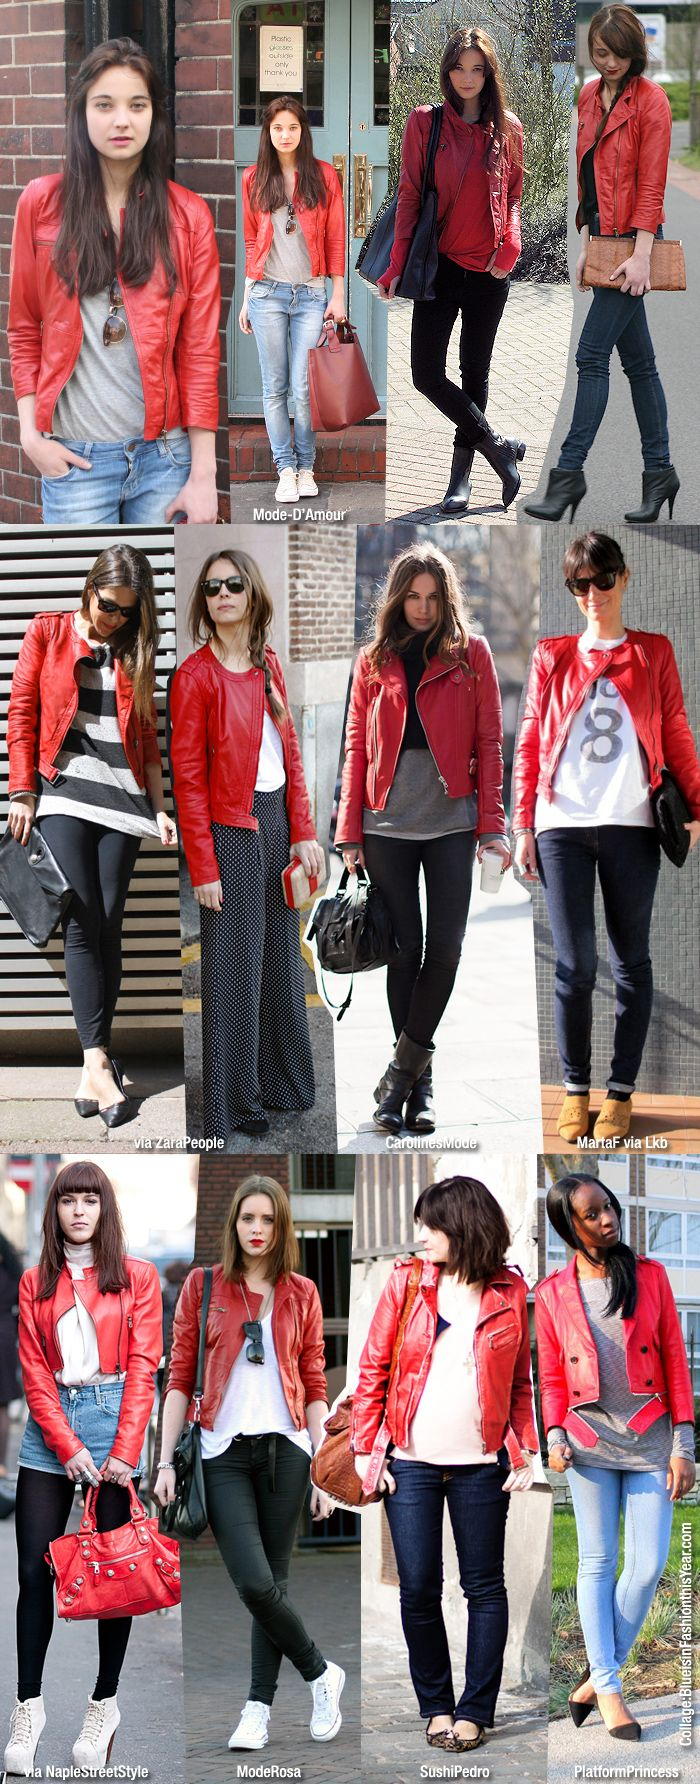 My jacket it red- so pair it with boring colours- dark pants and white top or light jeans and grey. flats, boots or flat sneakers